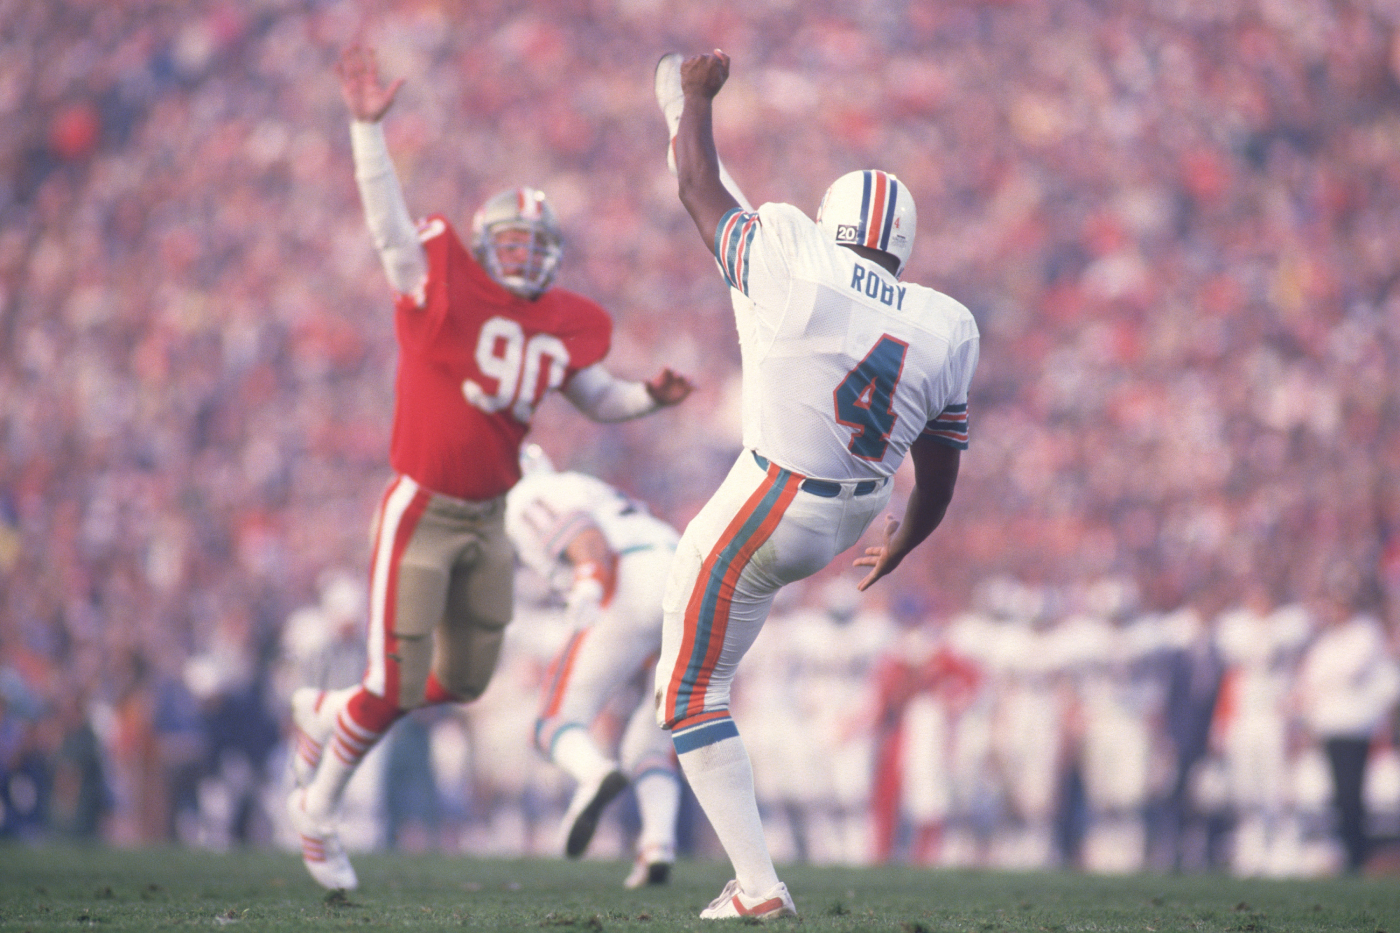 Reggie Roby was a very successful punter for the Miami Dolphins and broke down color barriers in the NFL. He, however, sadly died too young.